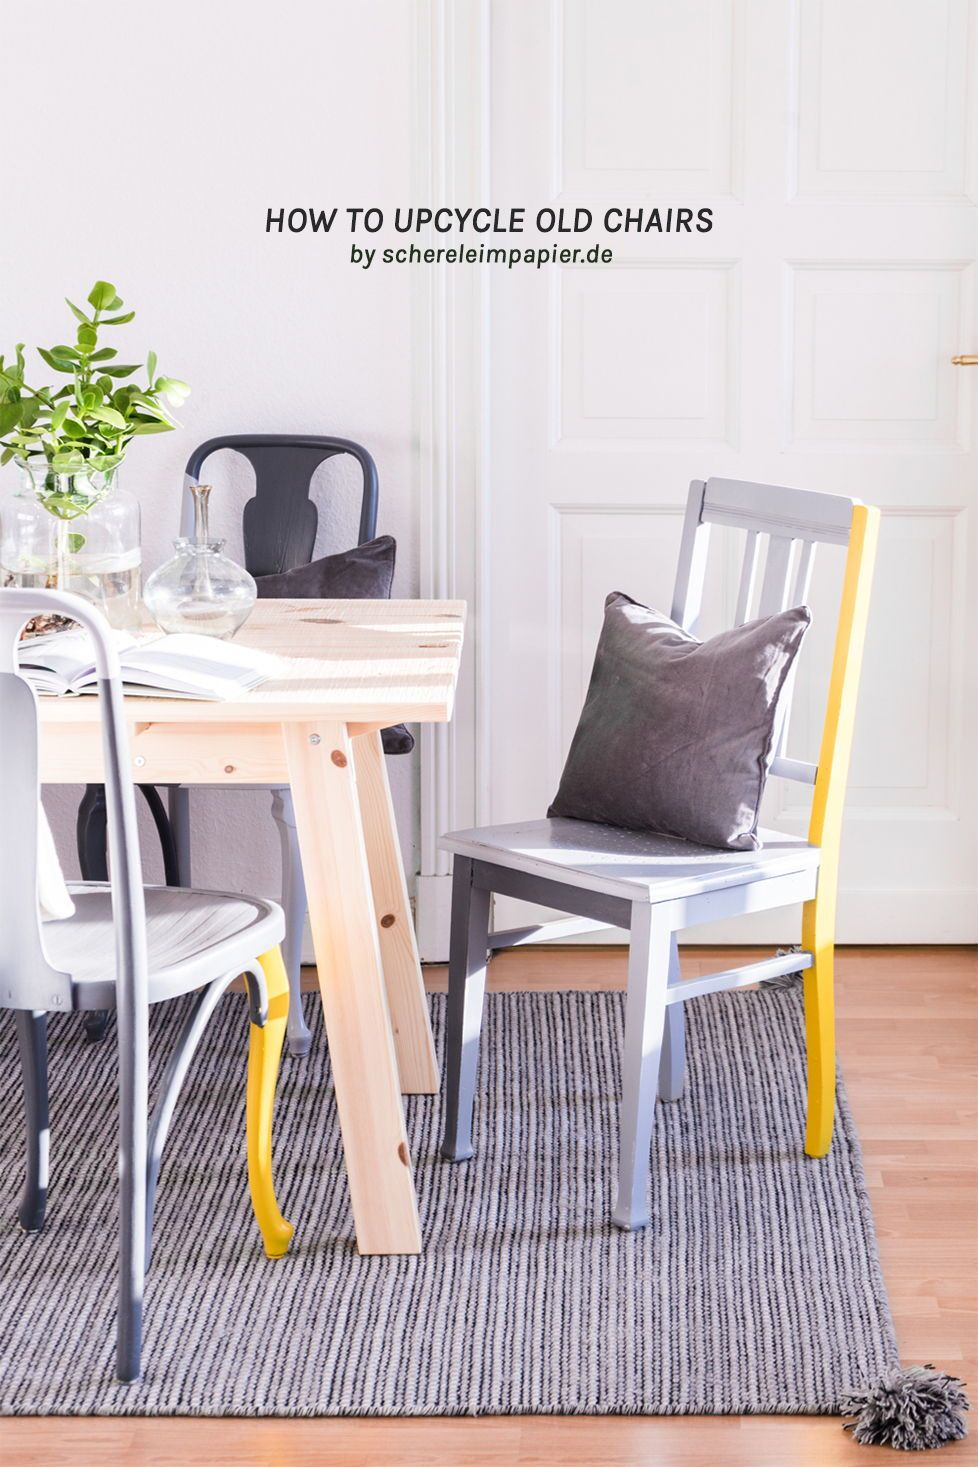 Upcycling Möbel Diy Mein Esszimmer Makeover Schereleimpapier Diy Upcycling Möbel Diy Zuhause Haus Deko